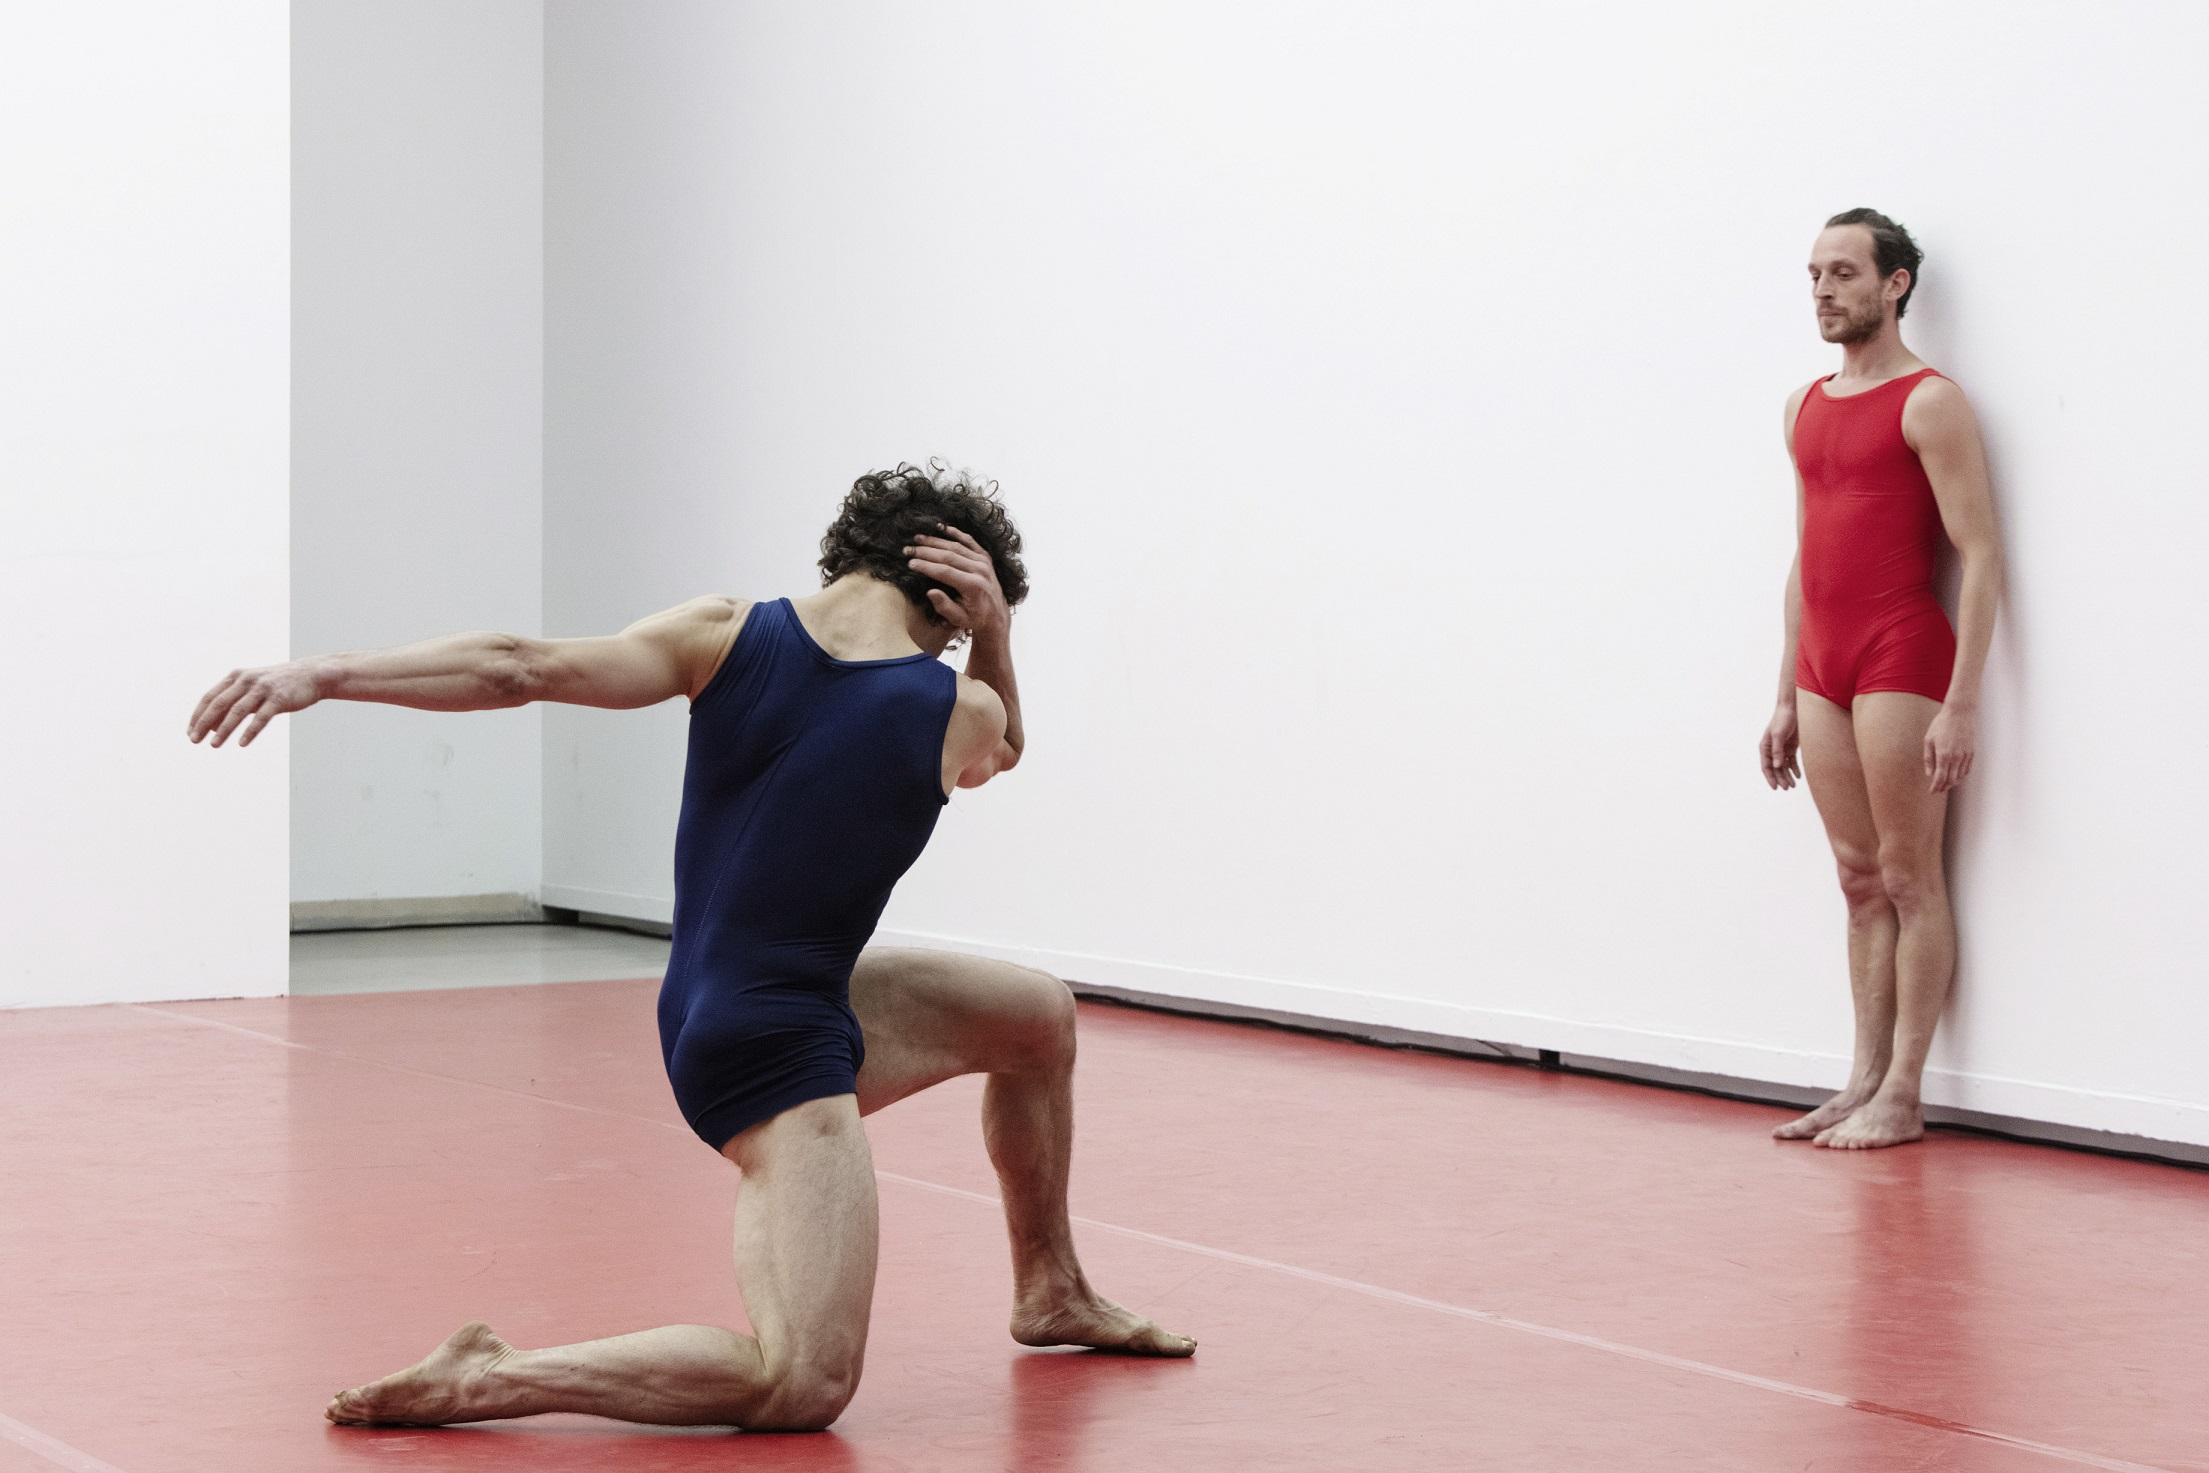 Baroque Dances - At the Royal Academy of Arts